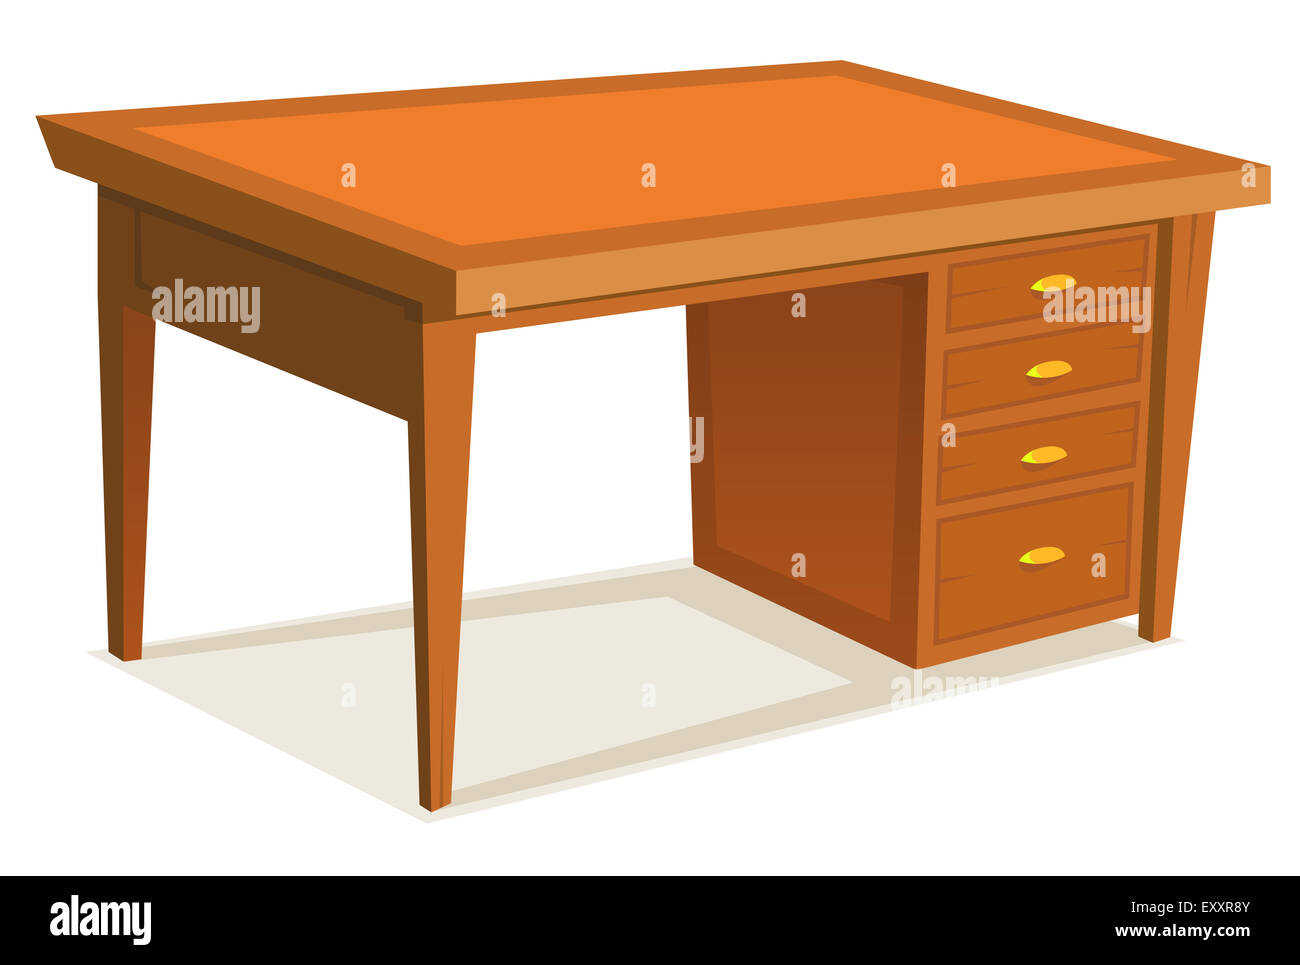 Illustration Of A Cartoon Wooden Office Desk Furniture With Drawer Stock Photo Alamy